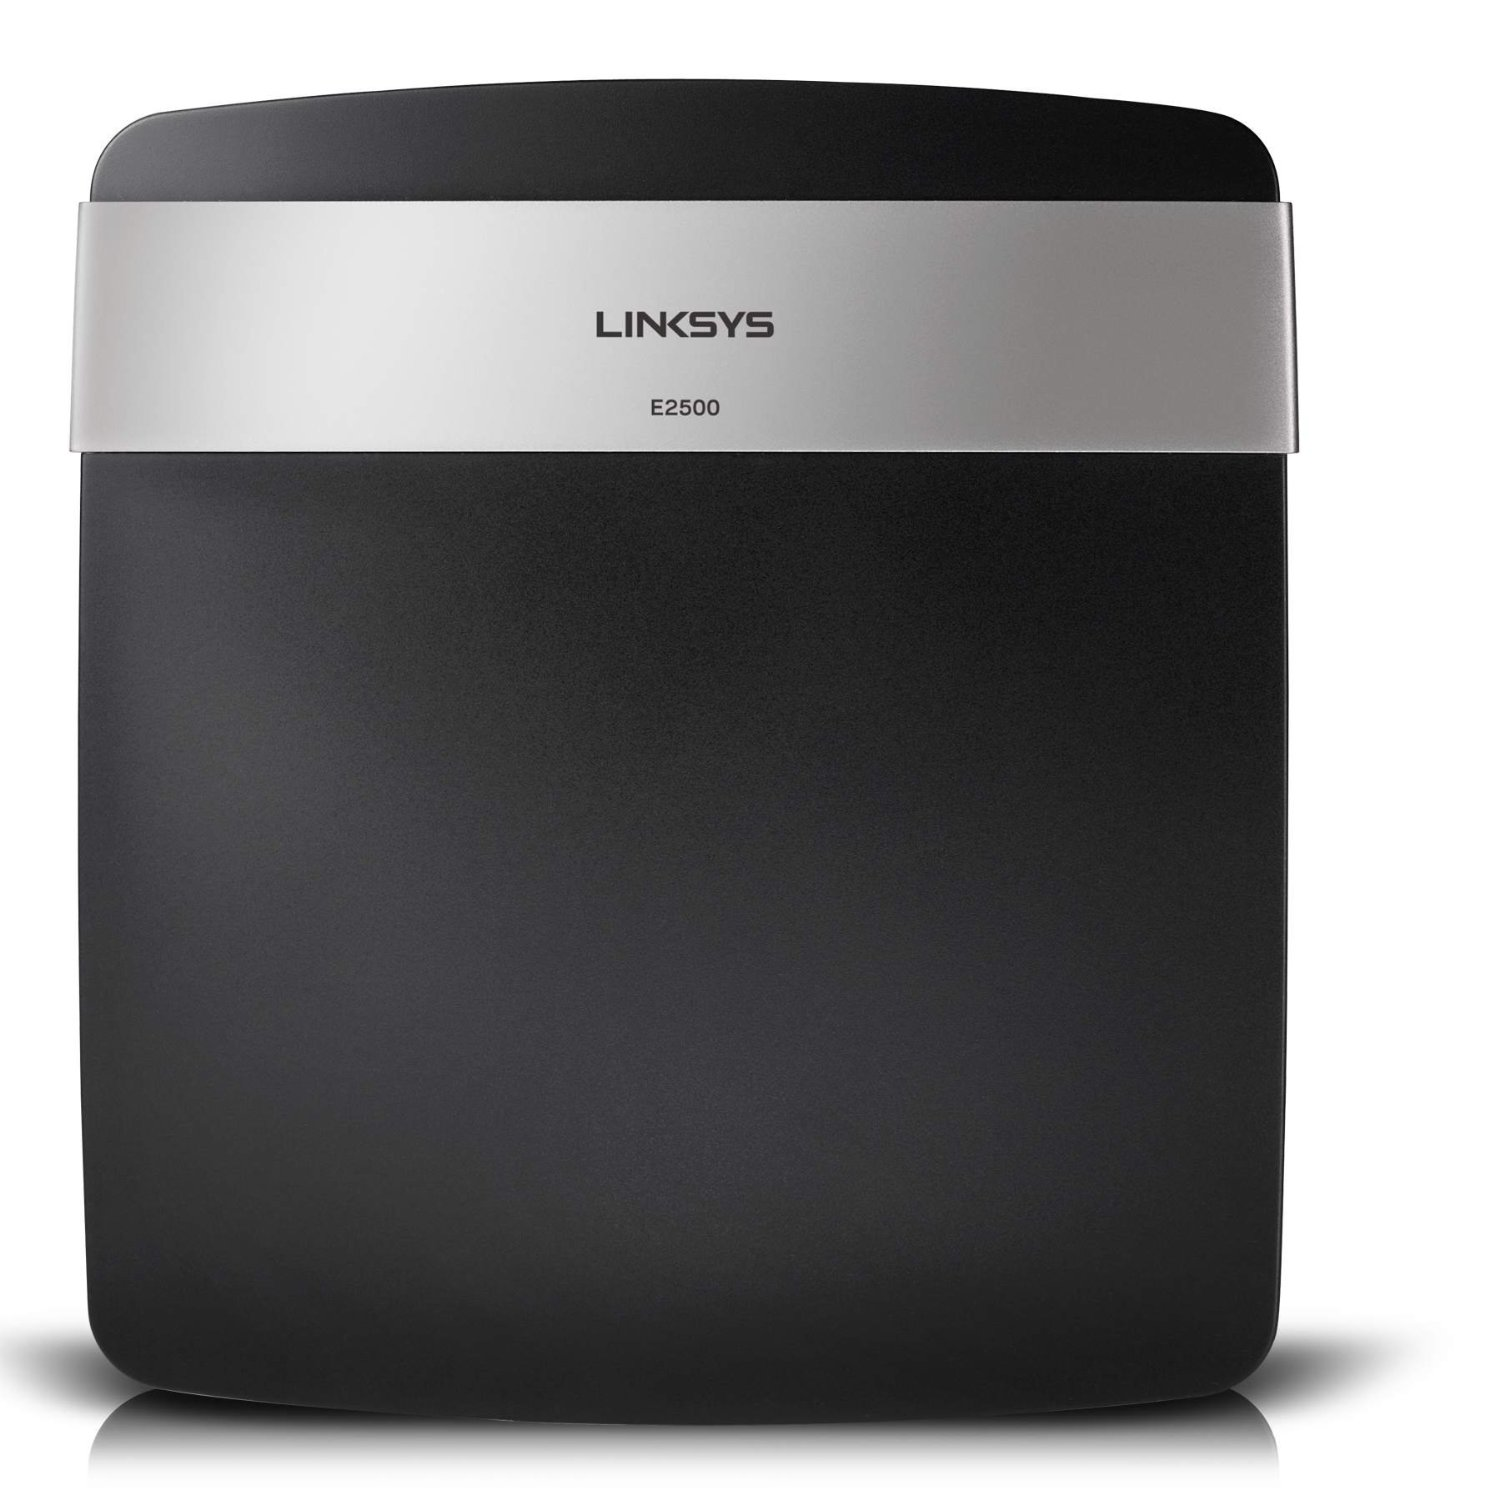 Wireless Router Linksys E2500